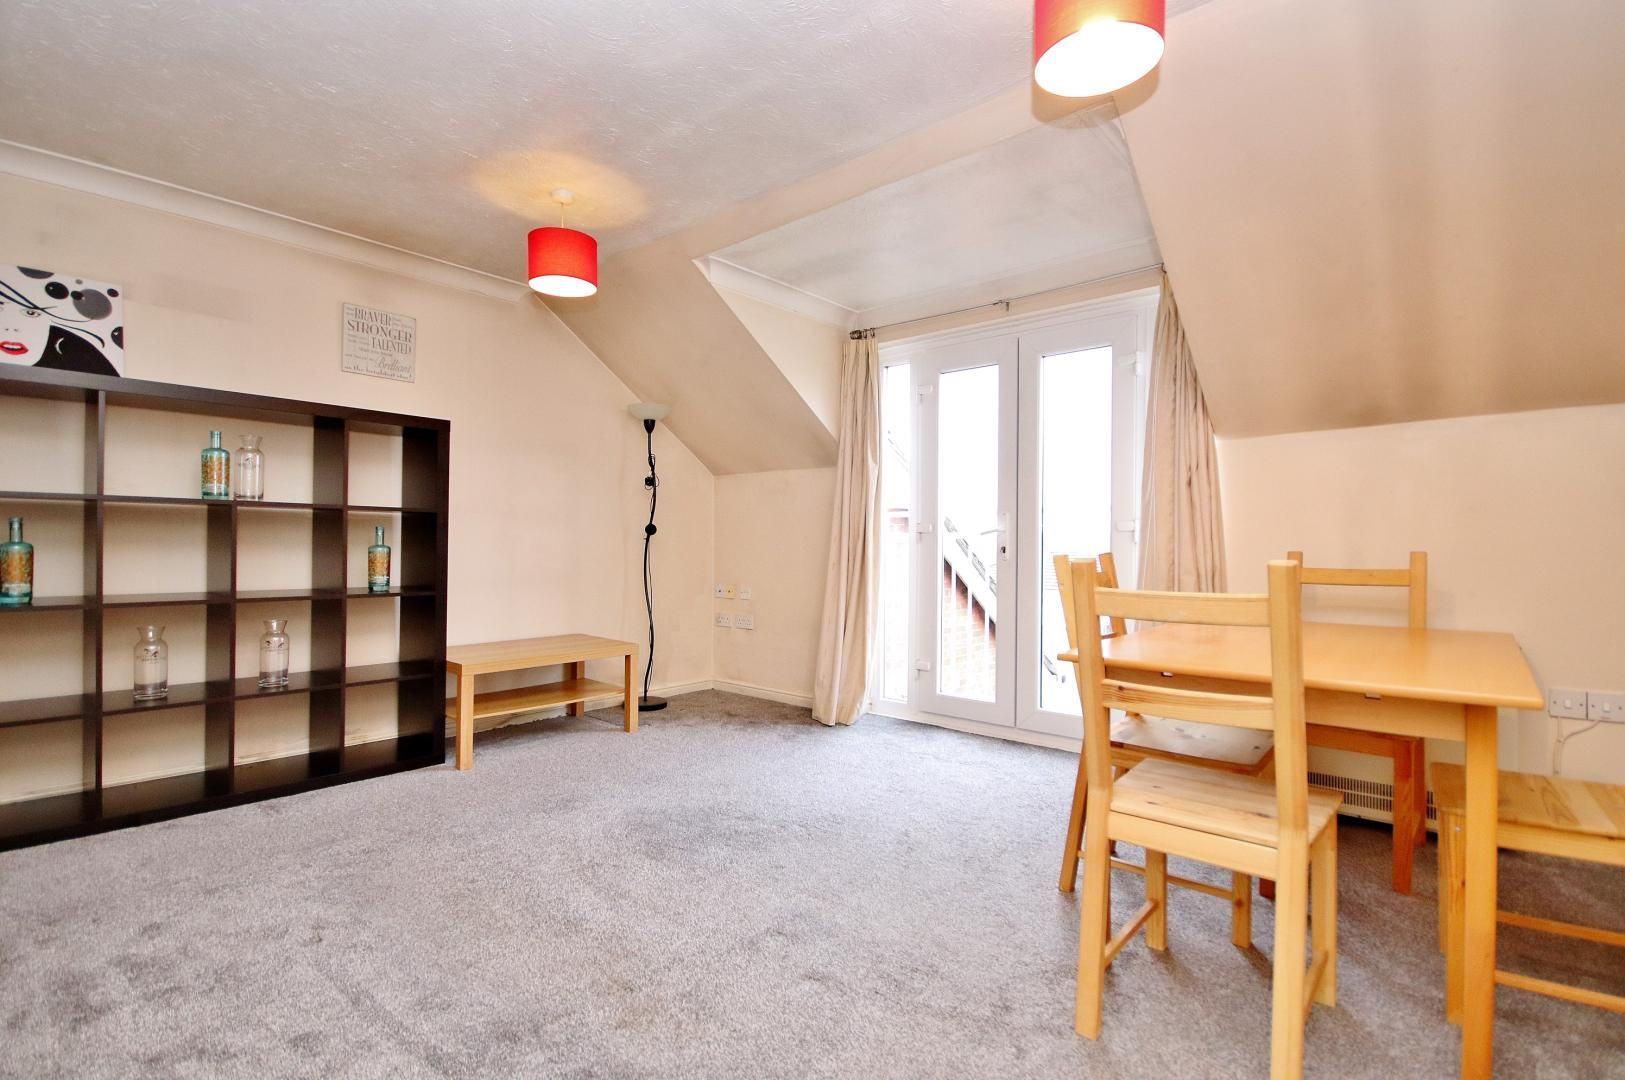 1 bed flat for sale in Ridley Close, IG11